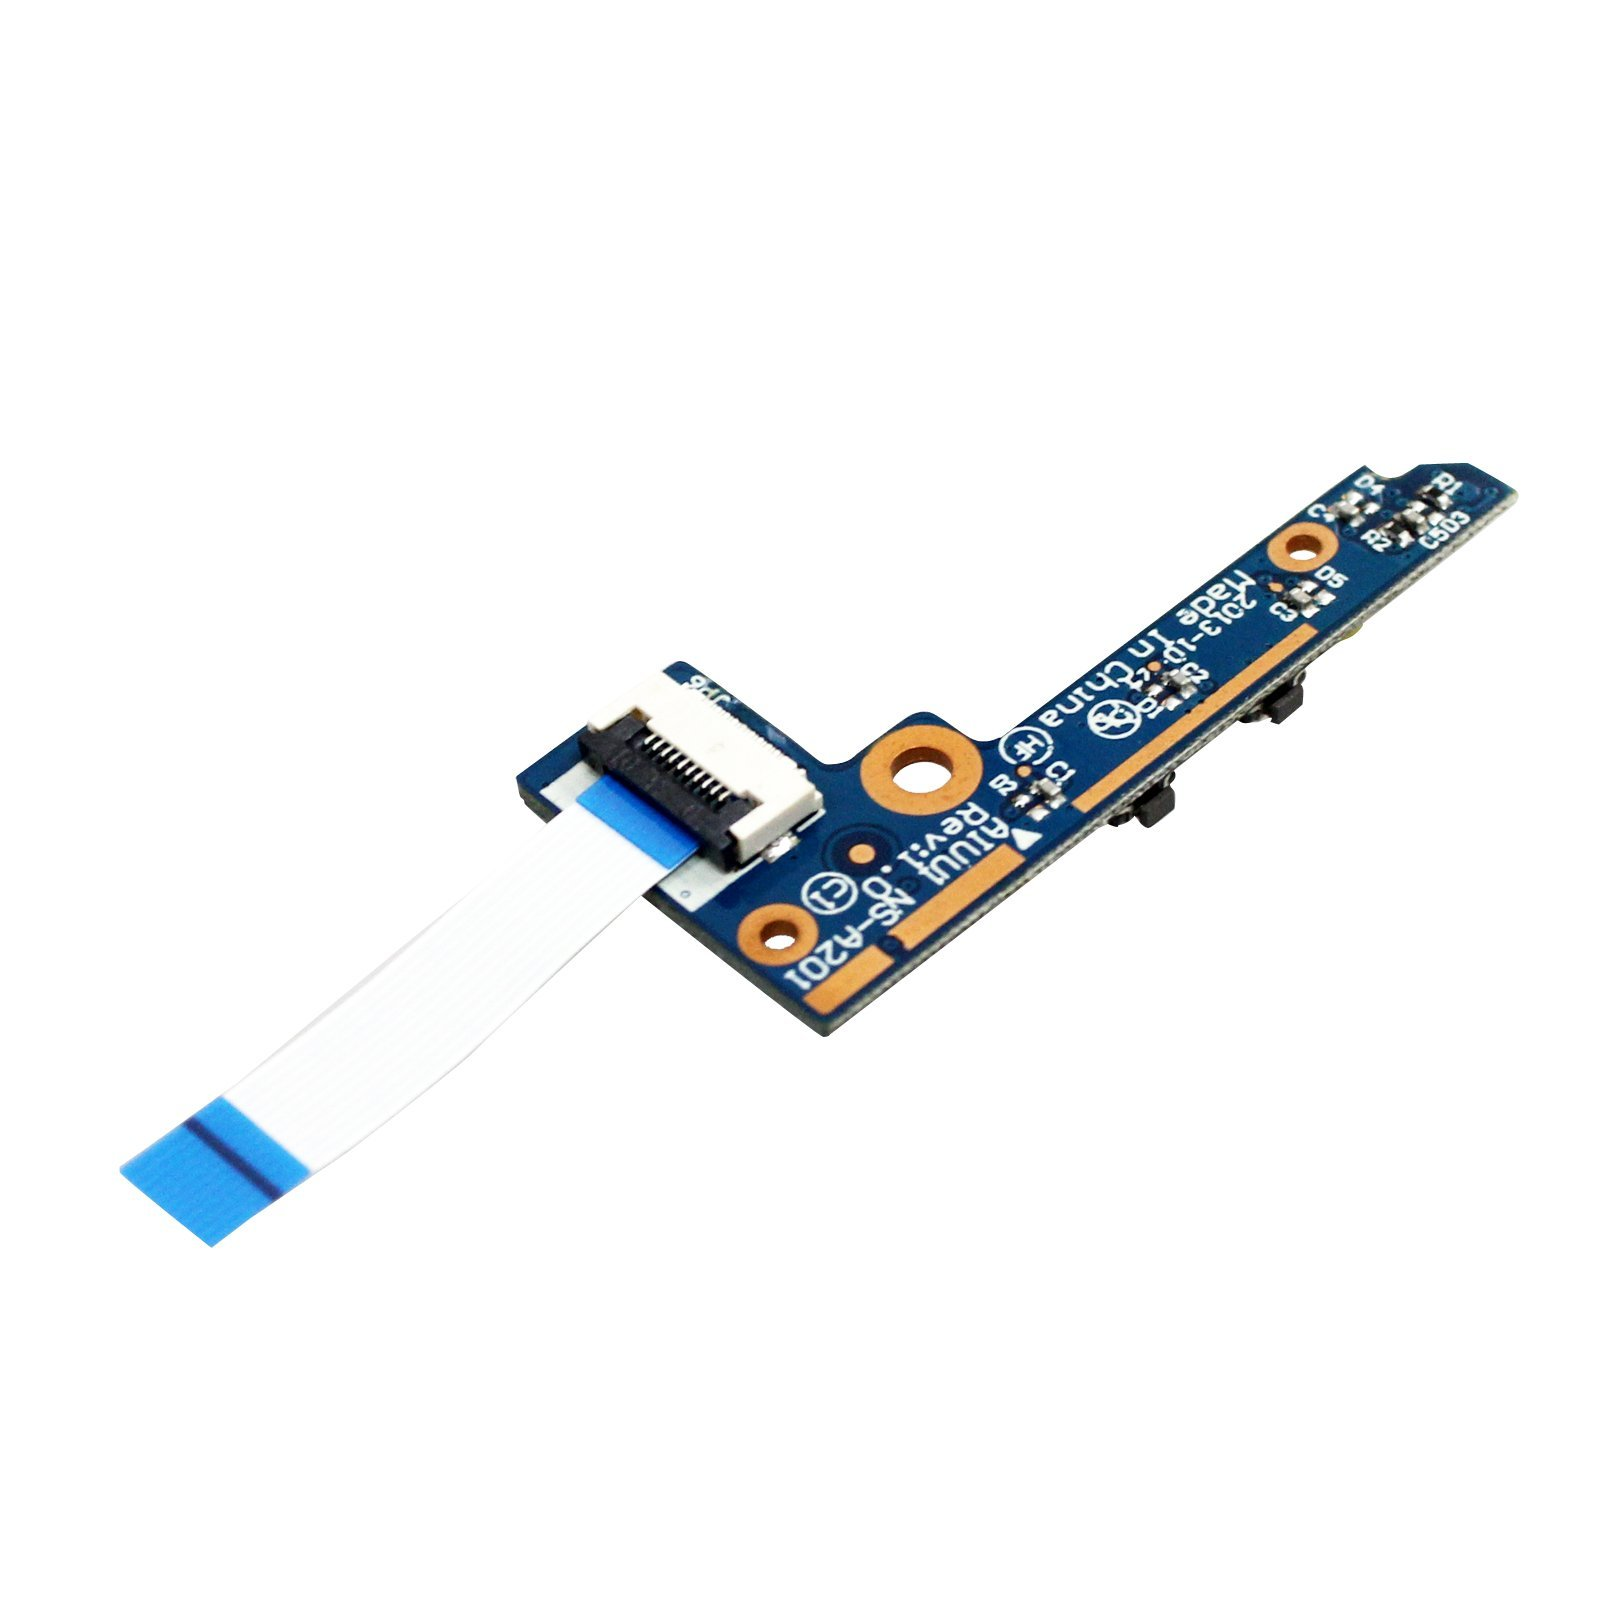 GinTai Power Button Board Cable NS-A201 Replacement for Lenovo Yoga 2 11 20332 20428 59417911 43508112001 90005666 by GinTai (Image #4)